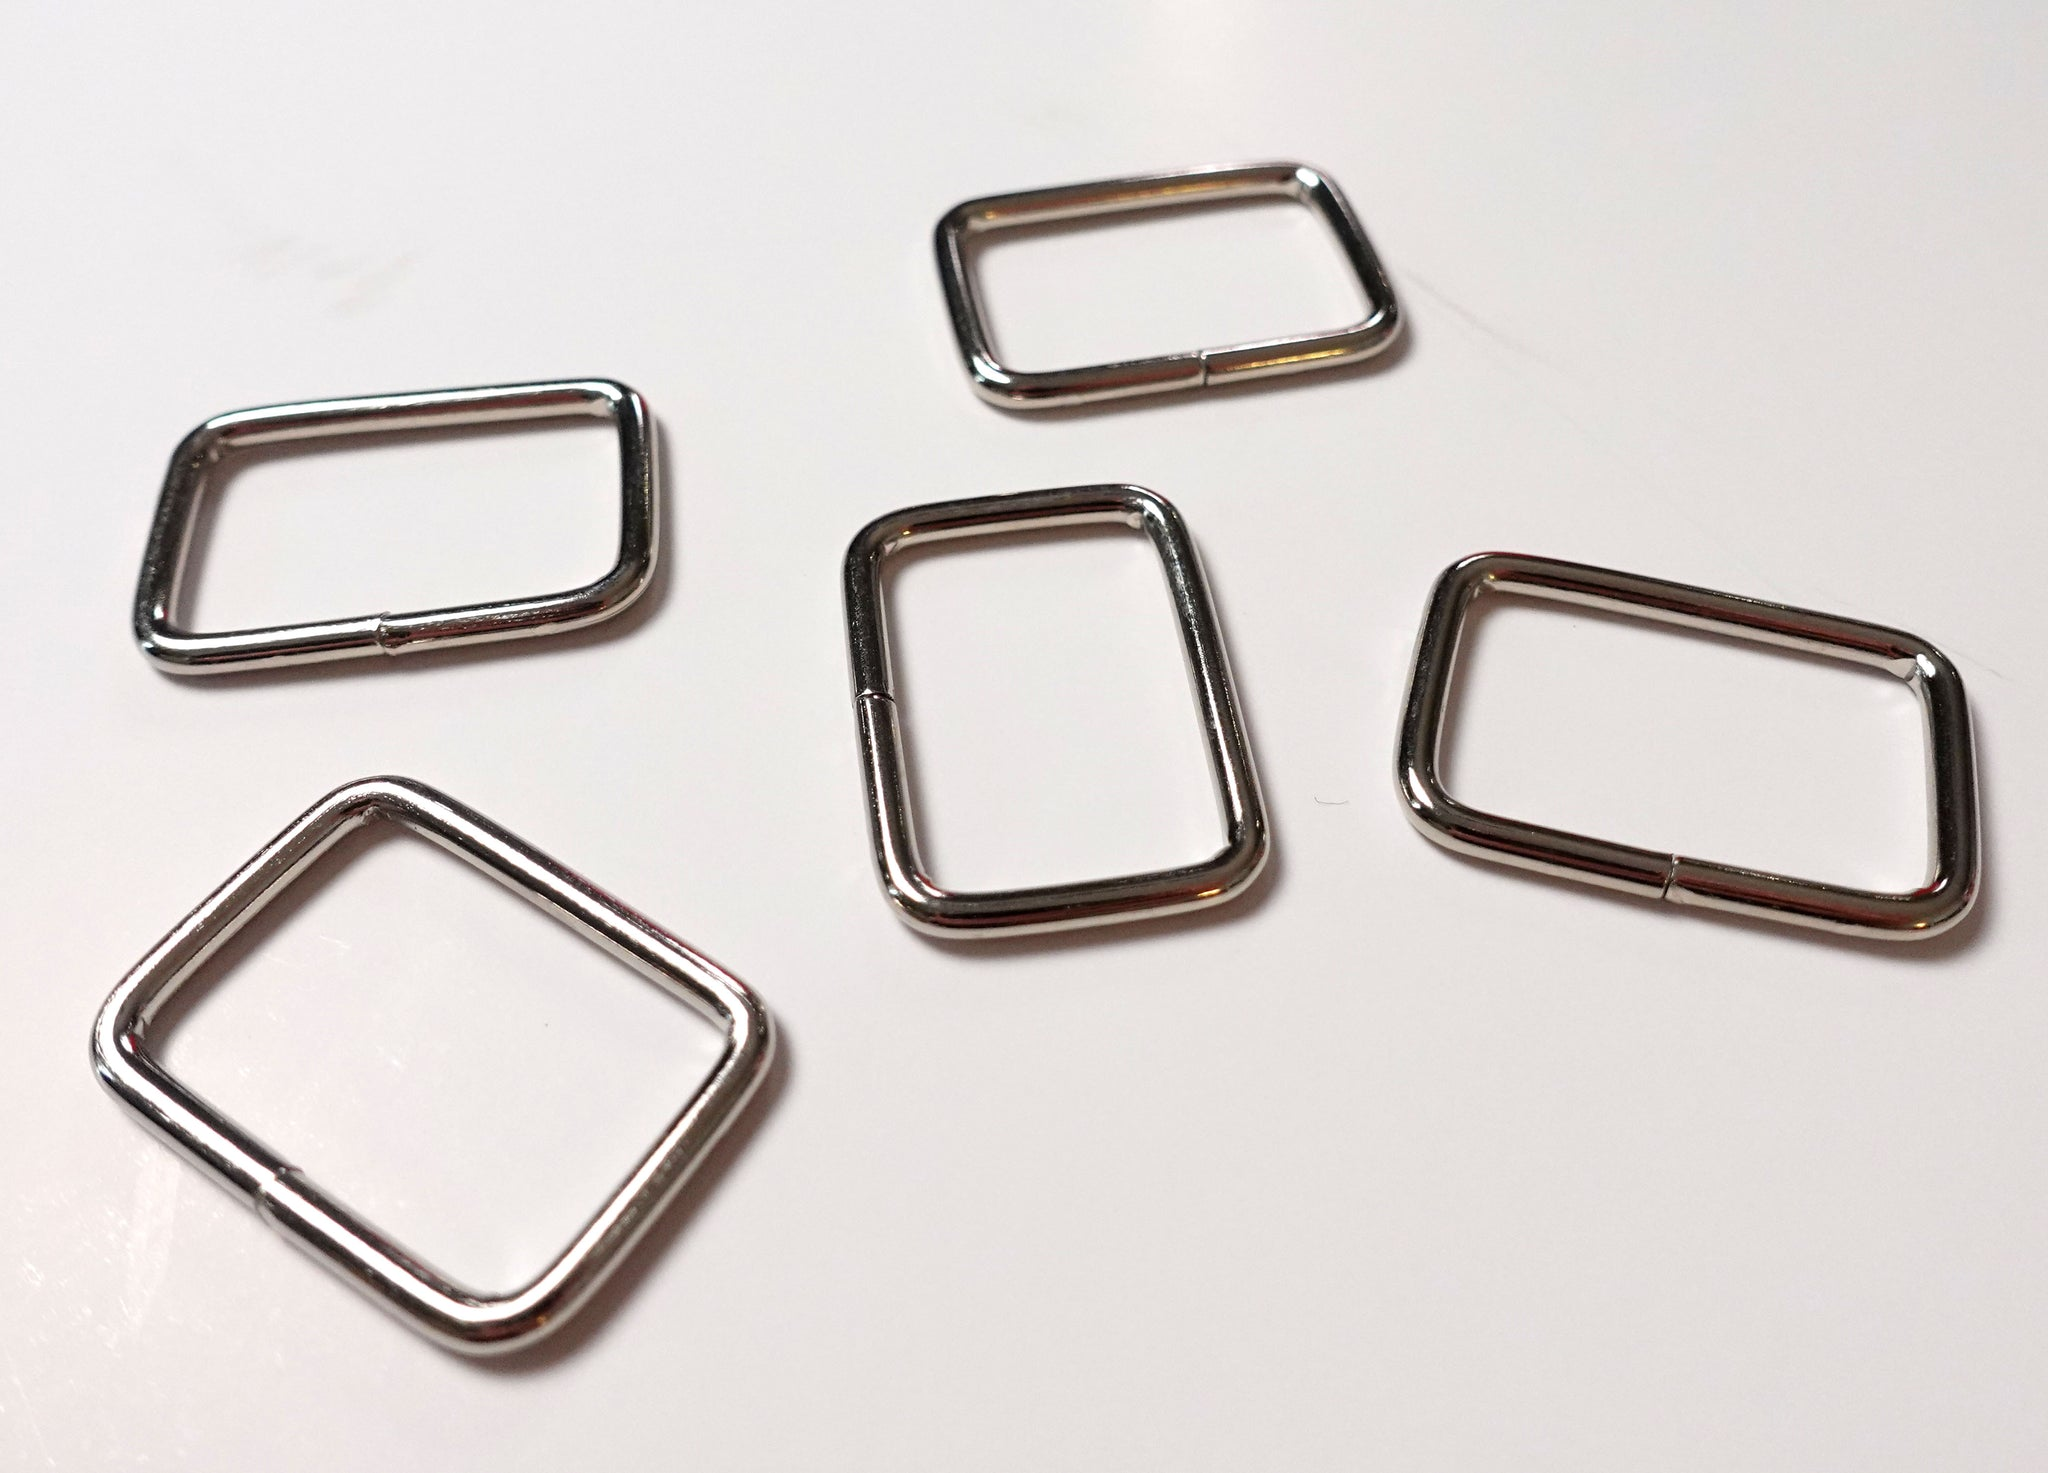 Value Pack 1 Inch Thin Rectangular Rings Silver Finish Set of 5